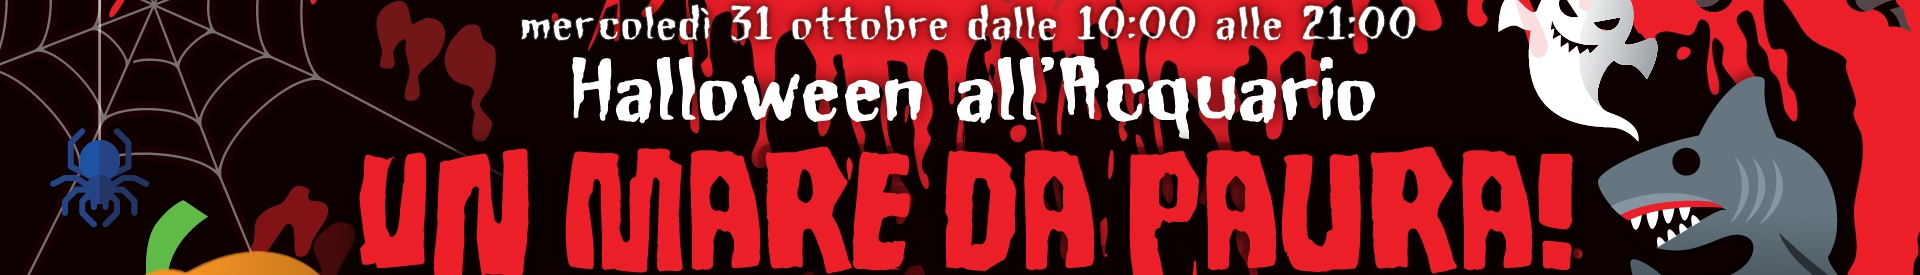 Halloween 2018 all'Acquario di Cala Gonone